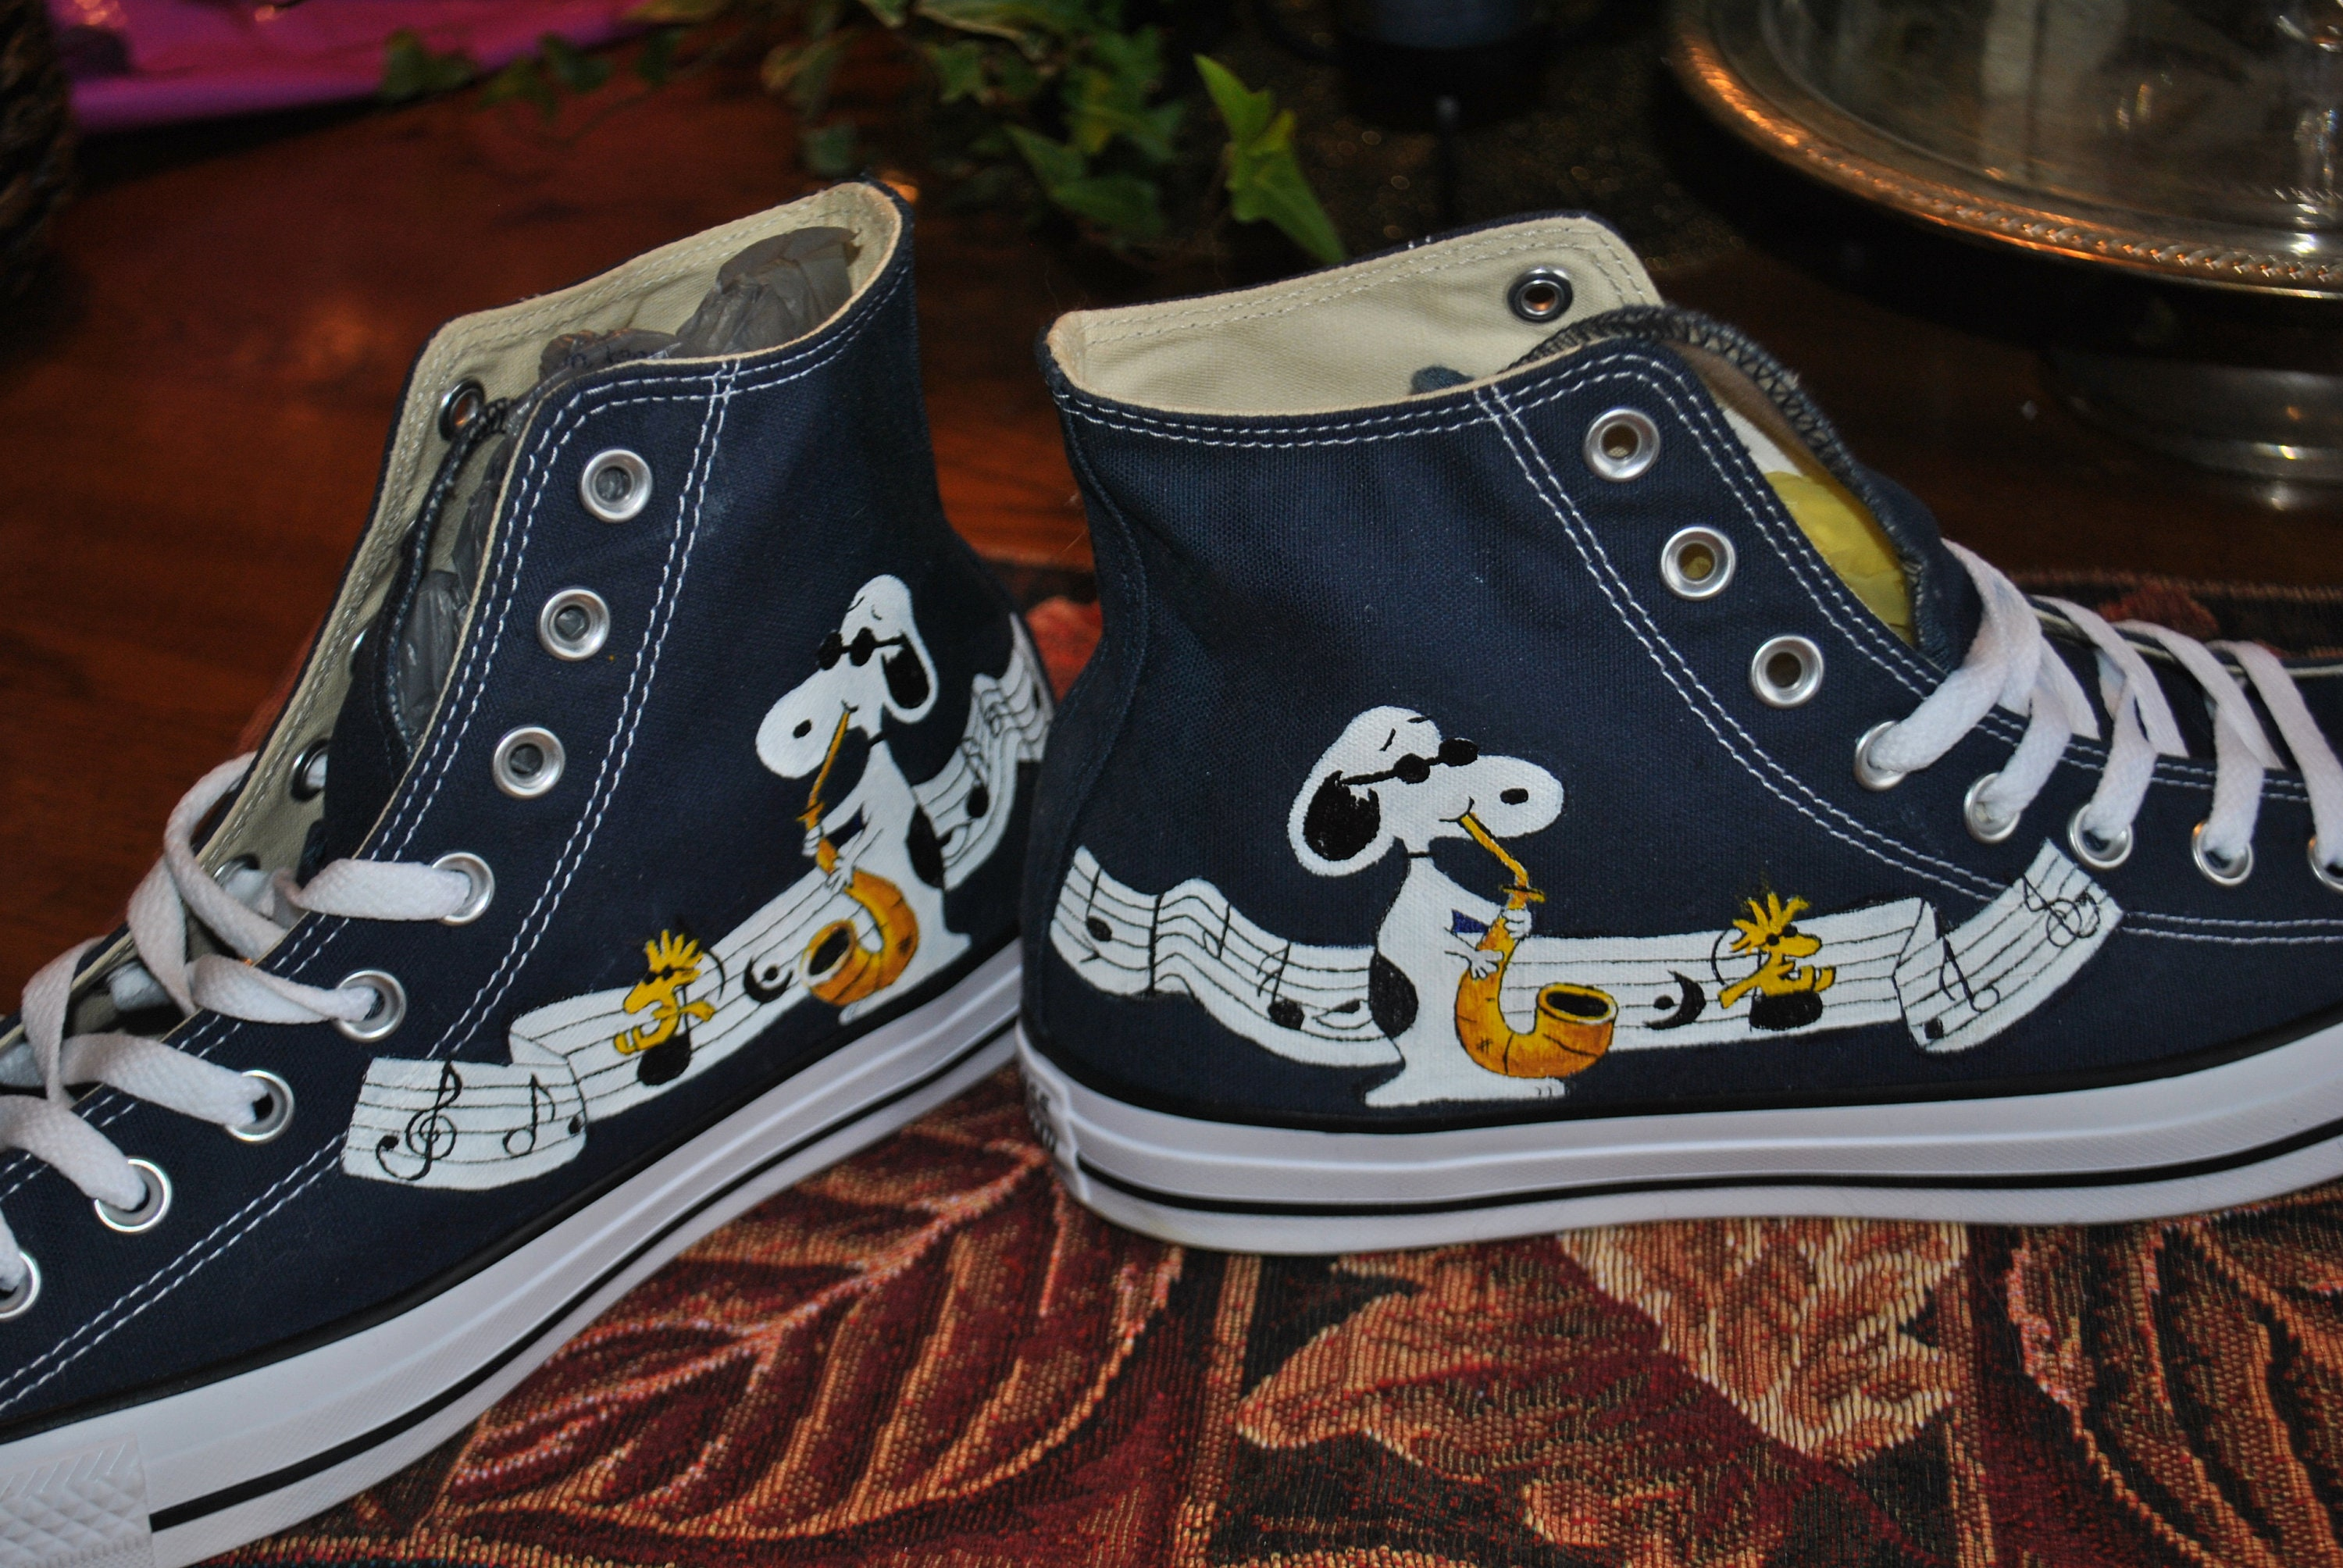 e3026da5fb0c6 Custom Hand Painted High Tops Chuck taylor by converse shoes - sold